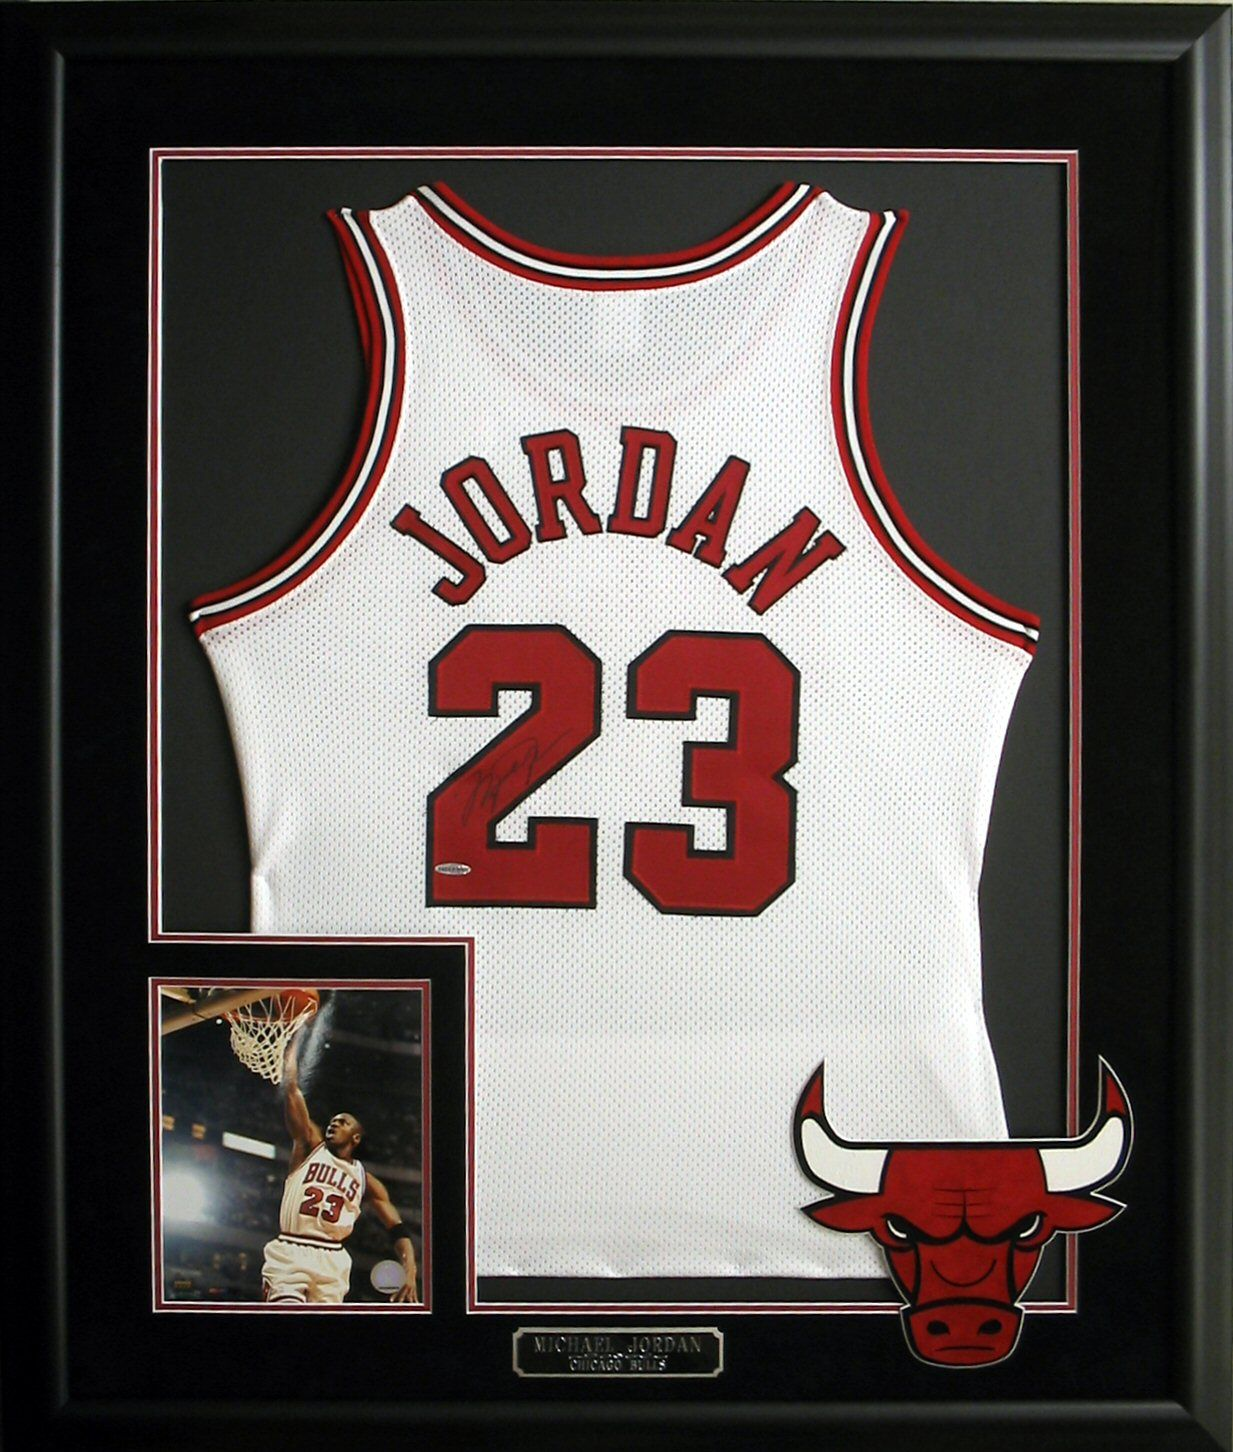 53eba8f6d Michael Jordan autographed and framed jersey with photo and plate.   ChicagoBulls…